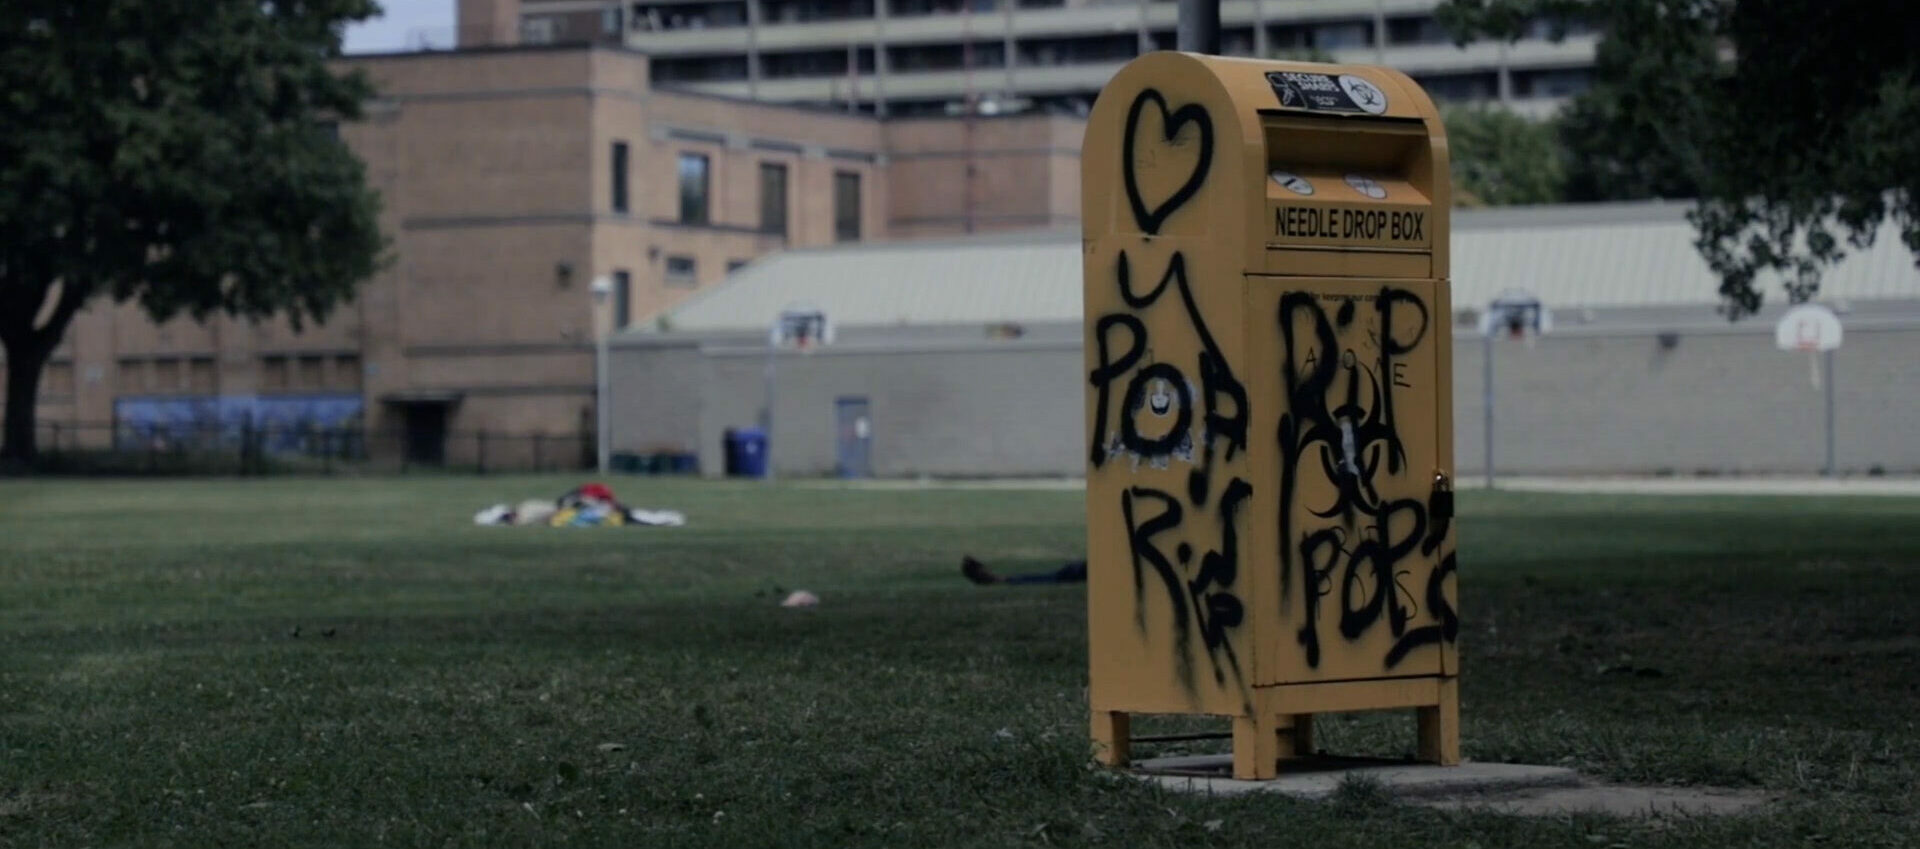 Still from Flood: The Overdose Epidemic in Canada